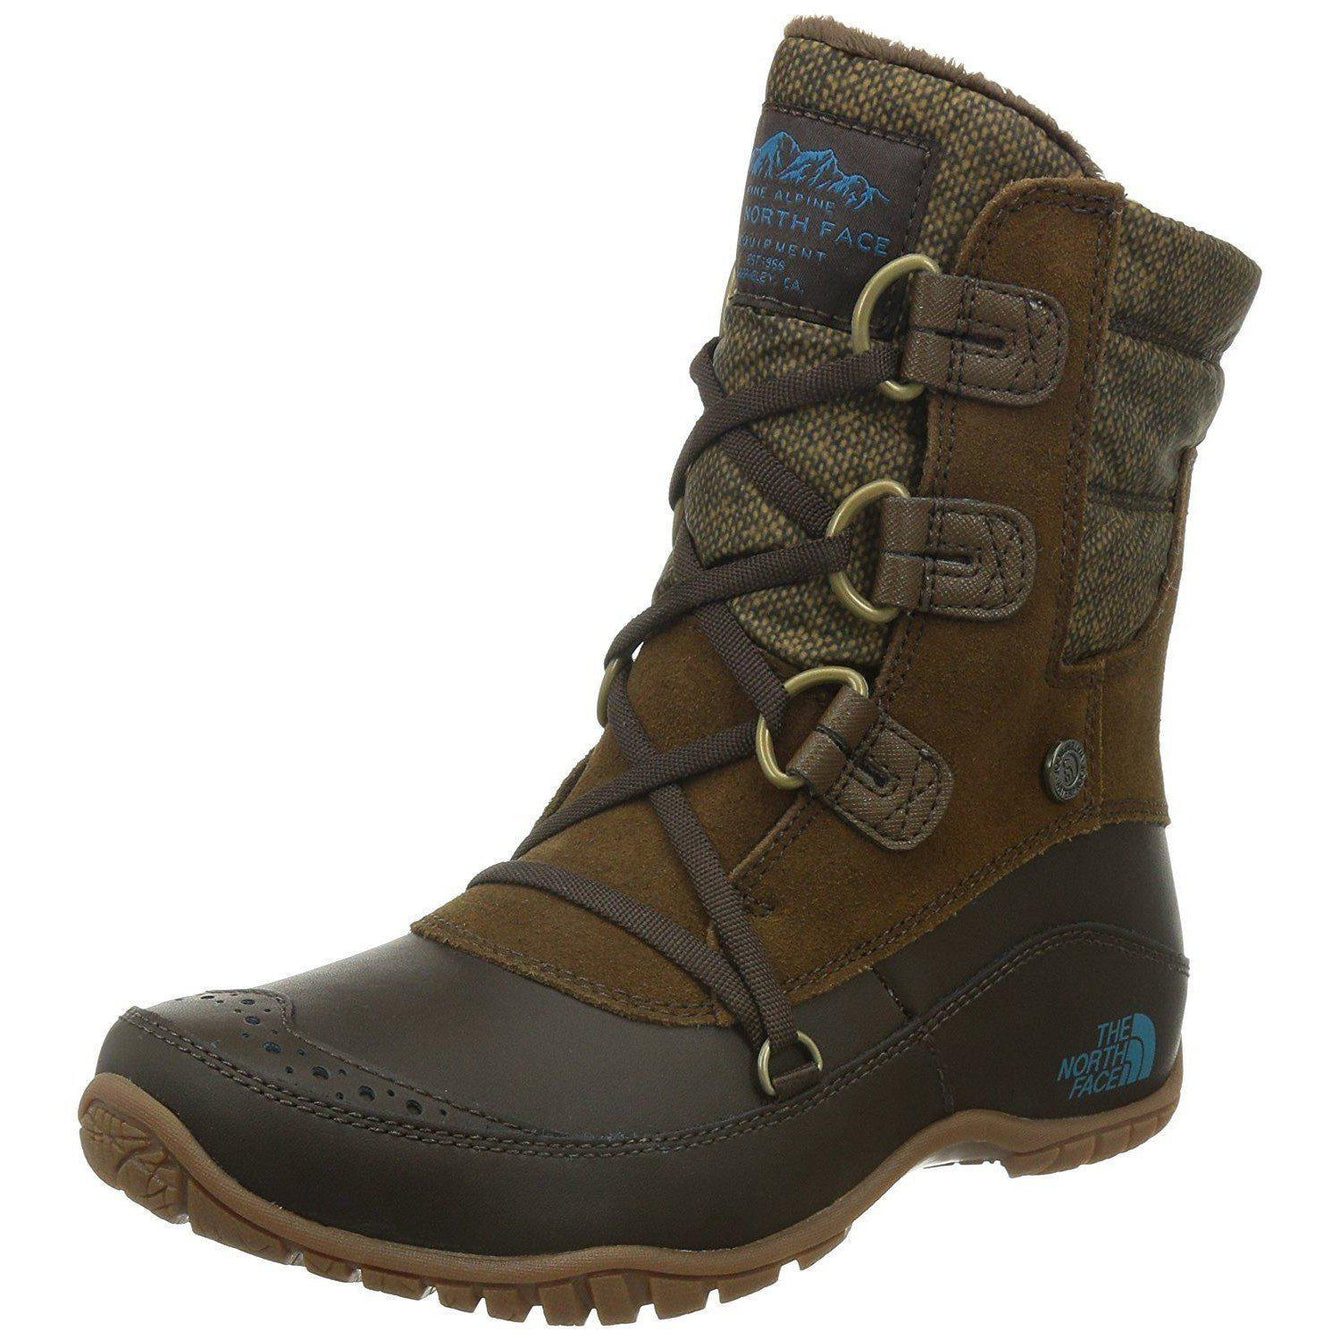 The North Face Nuptse Purna Shorty Boot Women's 5.5 / Desert Palm Brown/Storm Blue The North Face  kick-it-shoe-outlet.myshopify.com Kick-it Shoe Outlet Shoes Cheap